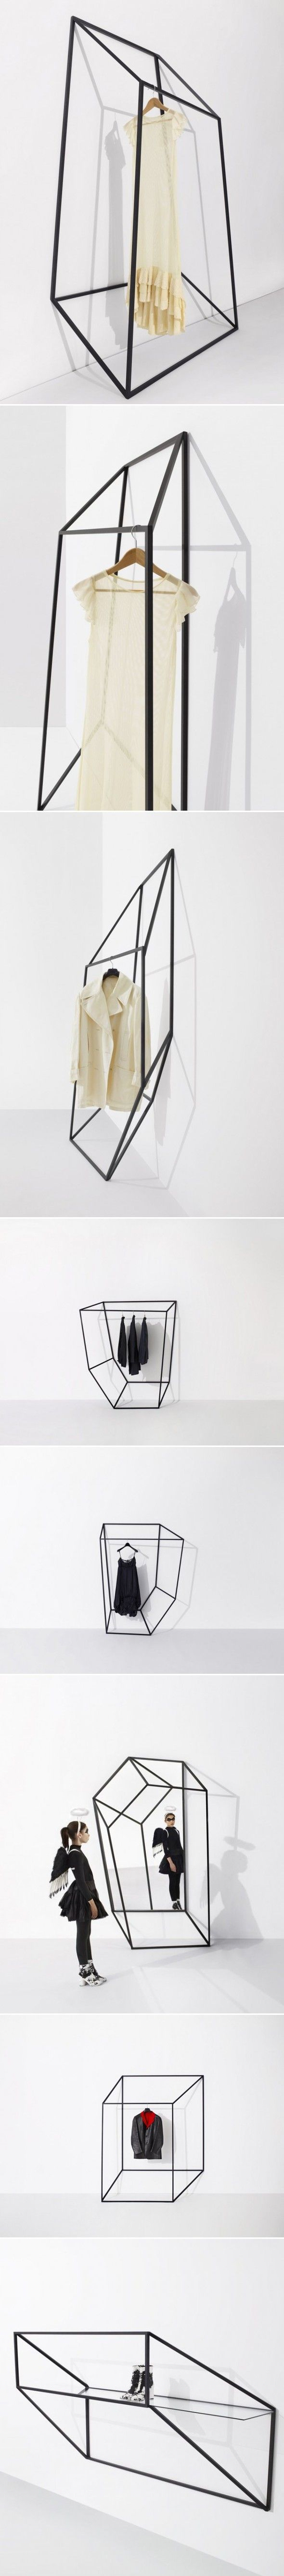 This is very simple and attractive display. The irregular shape of geometric by black lines highlights and attract attention compared to the white wall. The black lines of geometric shapes are made out of steels so that it can also be used as fixtures which also saves space. The 3d form of geometric shapes also creates shadows on the white wall adding extra interest. The overall concept also adds with the brand identity since the merchandise are also simple.